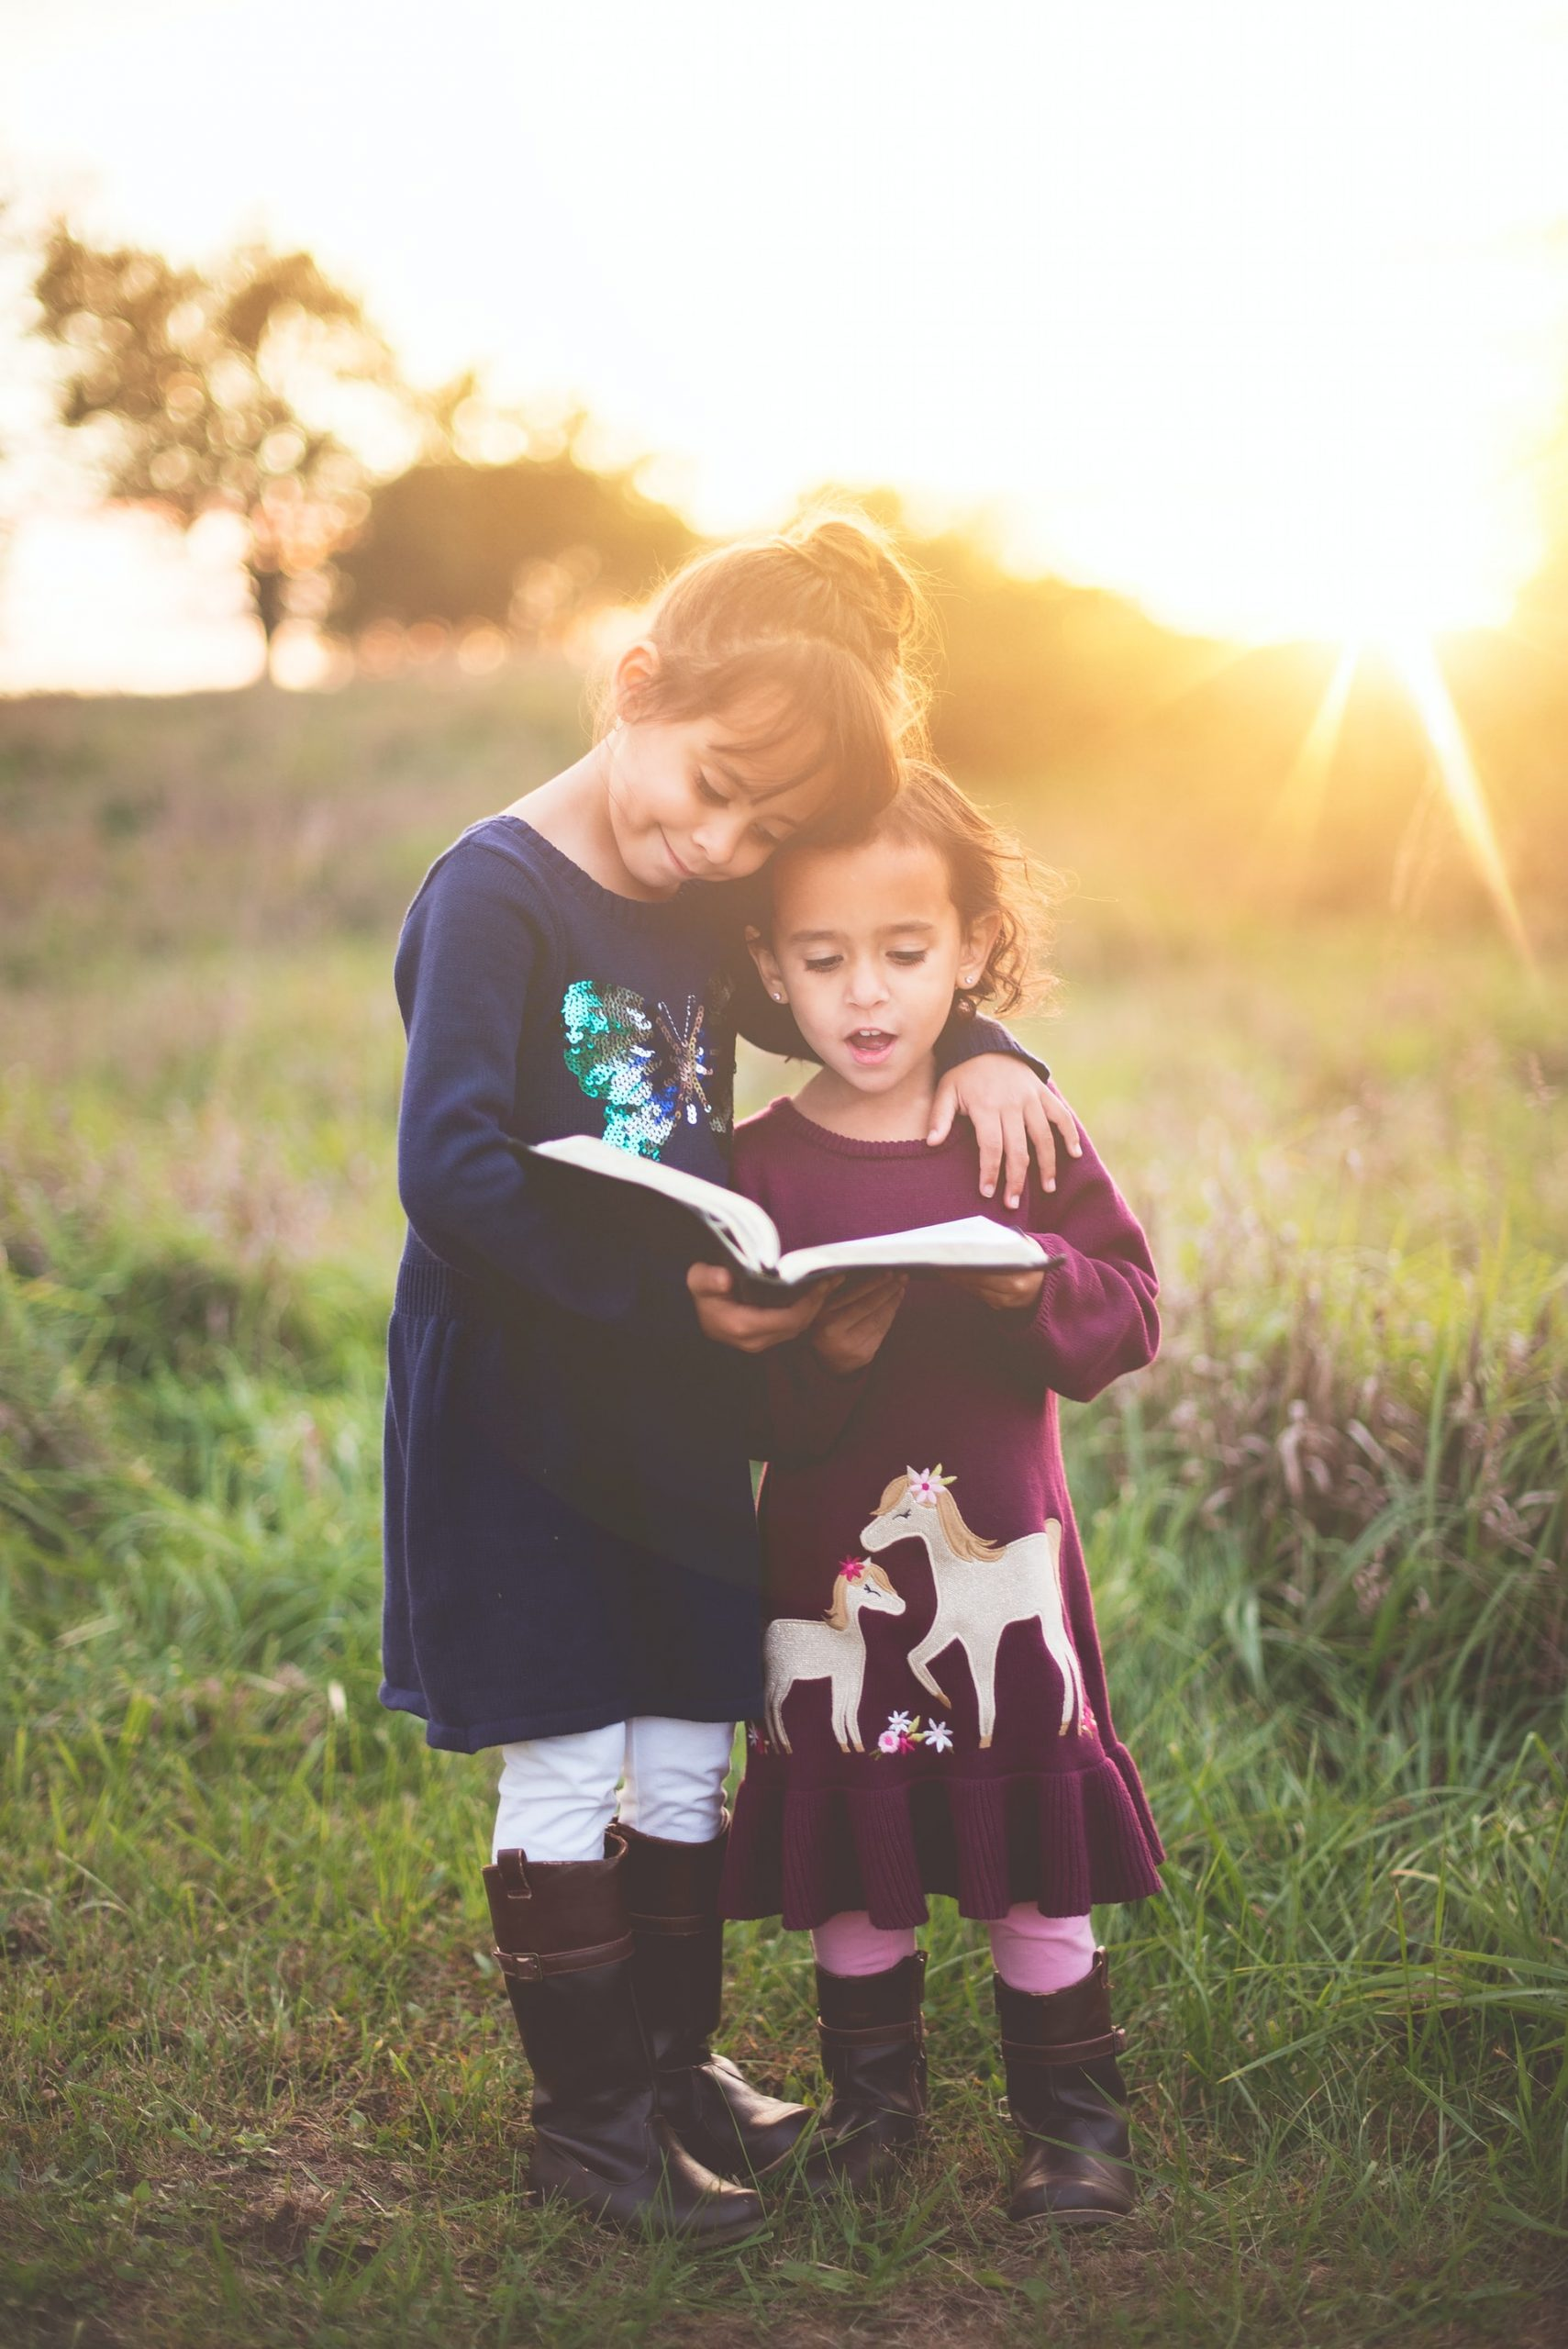 2 young girls reading a book together